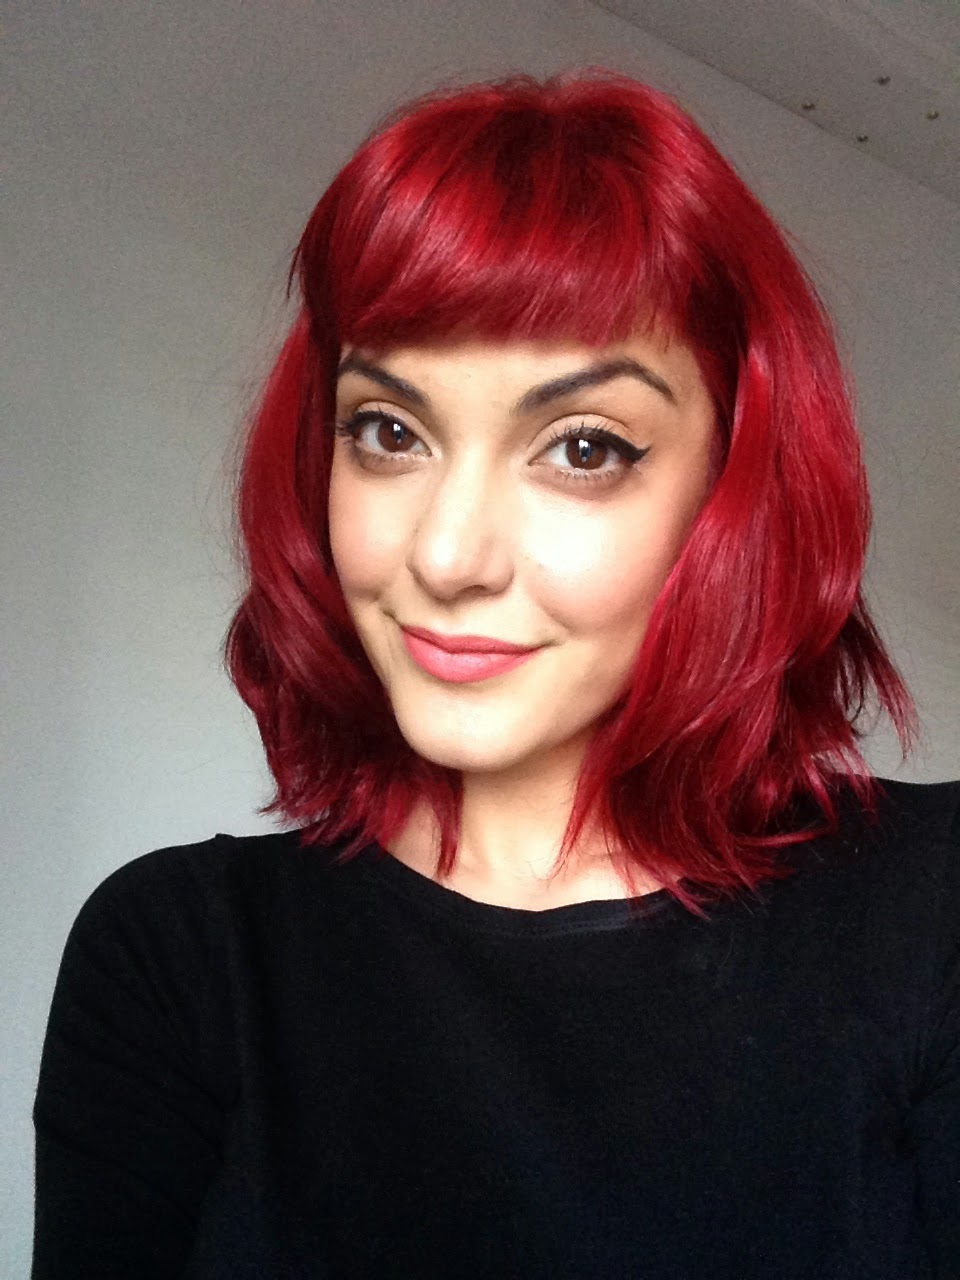 How I Turned My Brown Hair Bright Red Krystle Tips